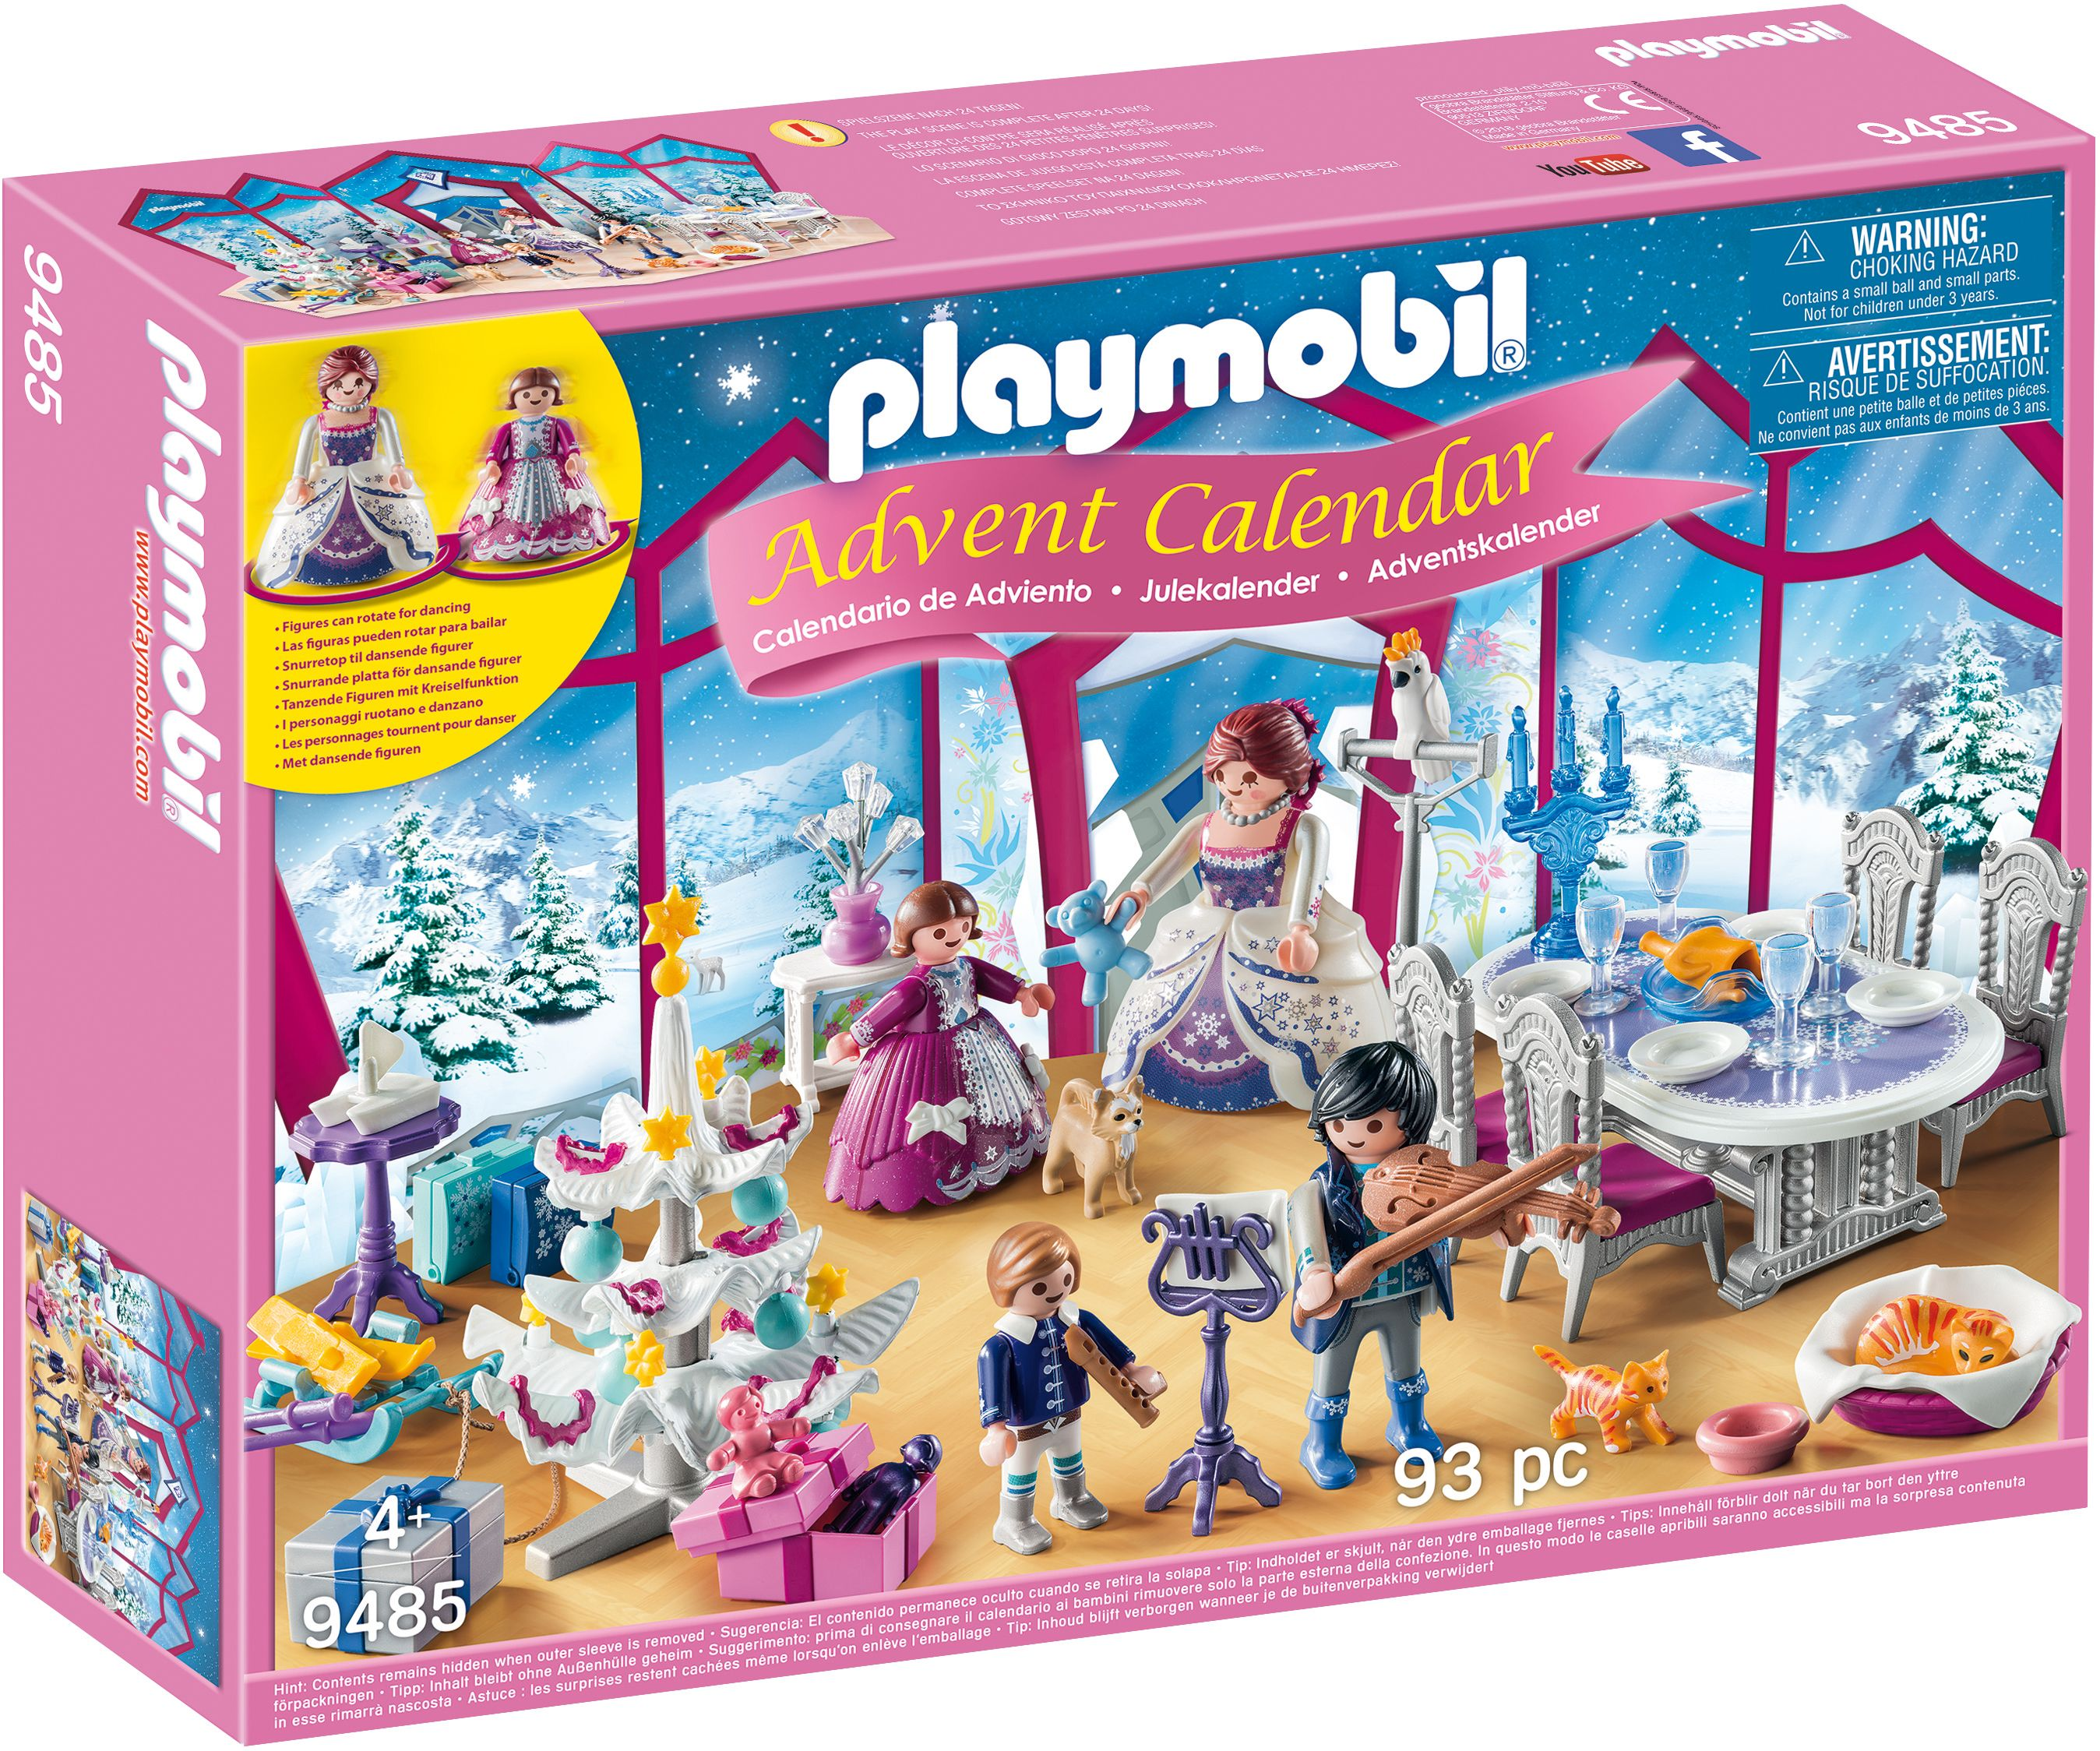 PLAYMOBIL Advent Calendar Christmas Ball ONLY $16.49 (Reg $25)